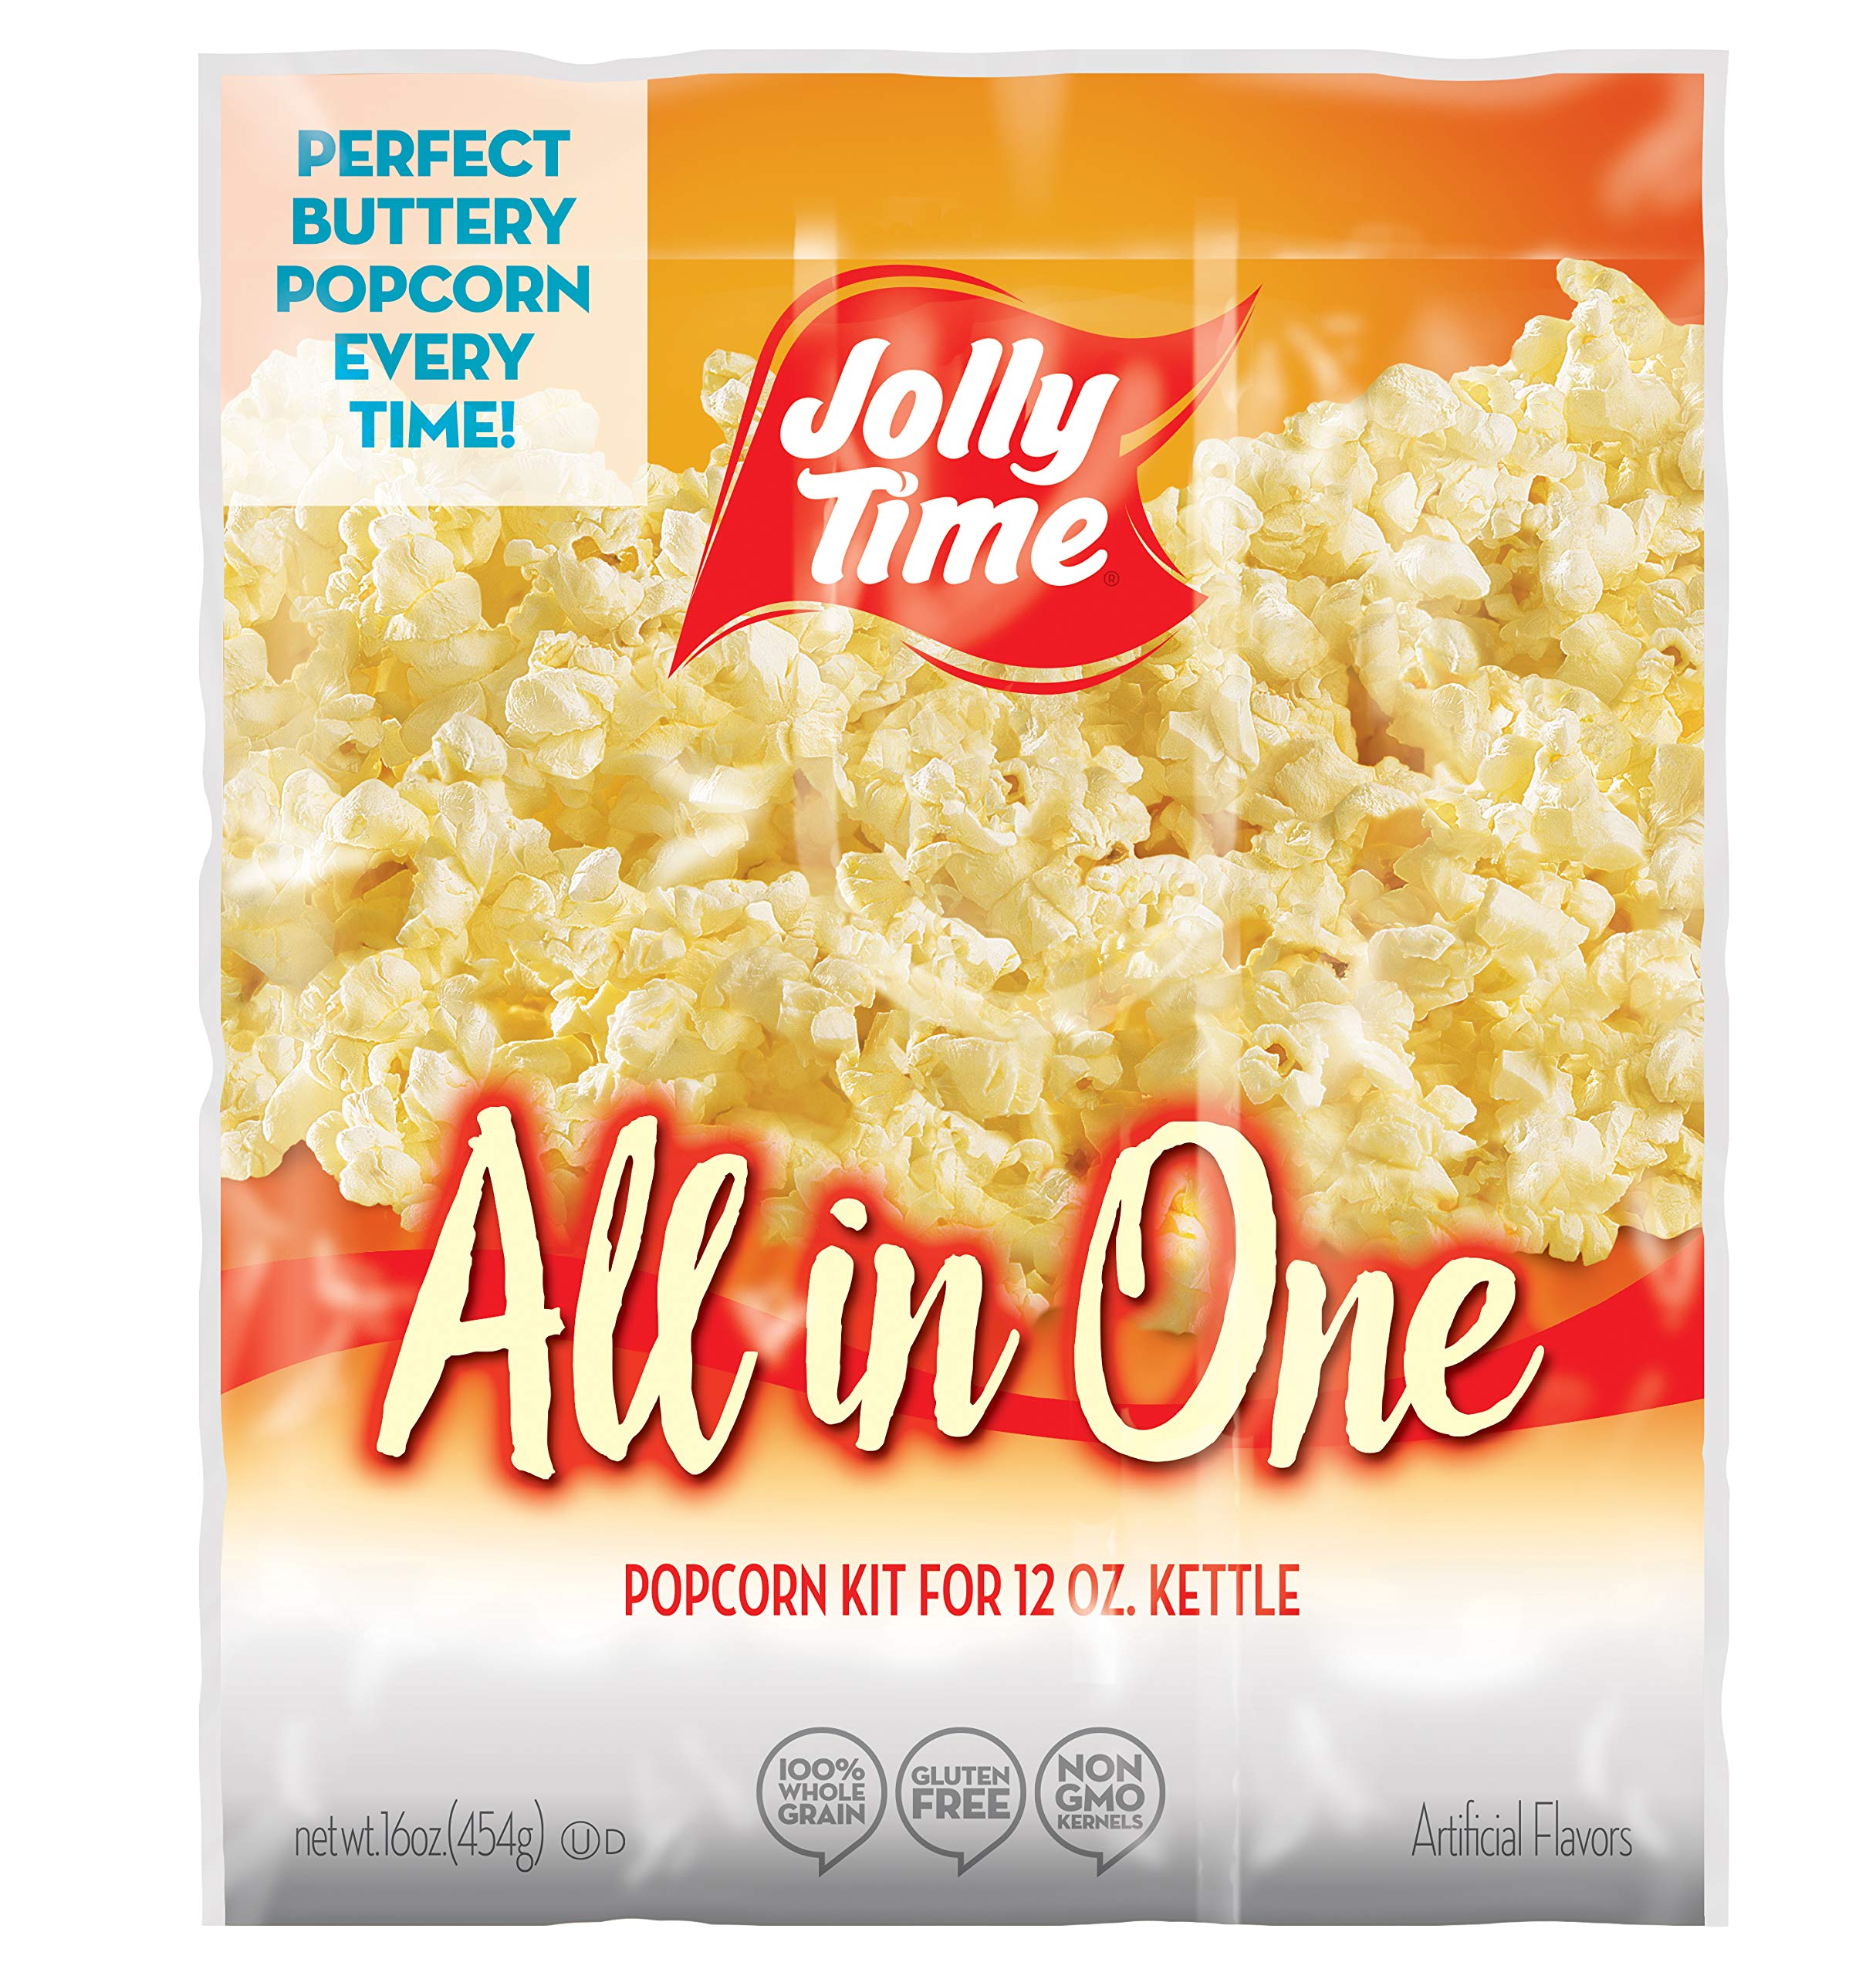 JOLLY TIME All in One Kit for 12 oz. Popcorn Machine | Portion Packet with Kernels, Oil and Salt Commercial, Movie Theater or Air Popper (Net Wt. 16 oz. Each, Pack of 24) by Jolly Time (Image #1)